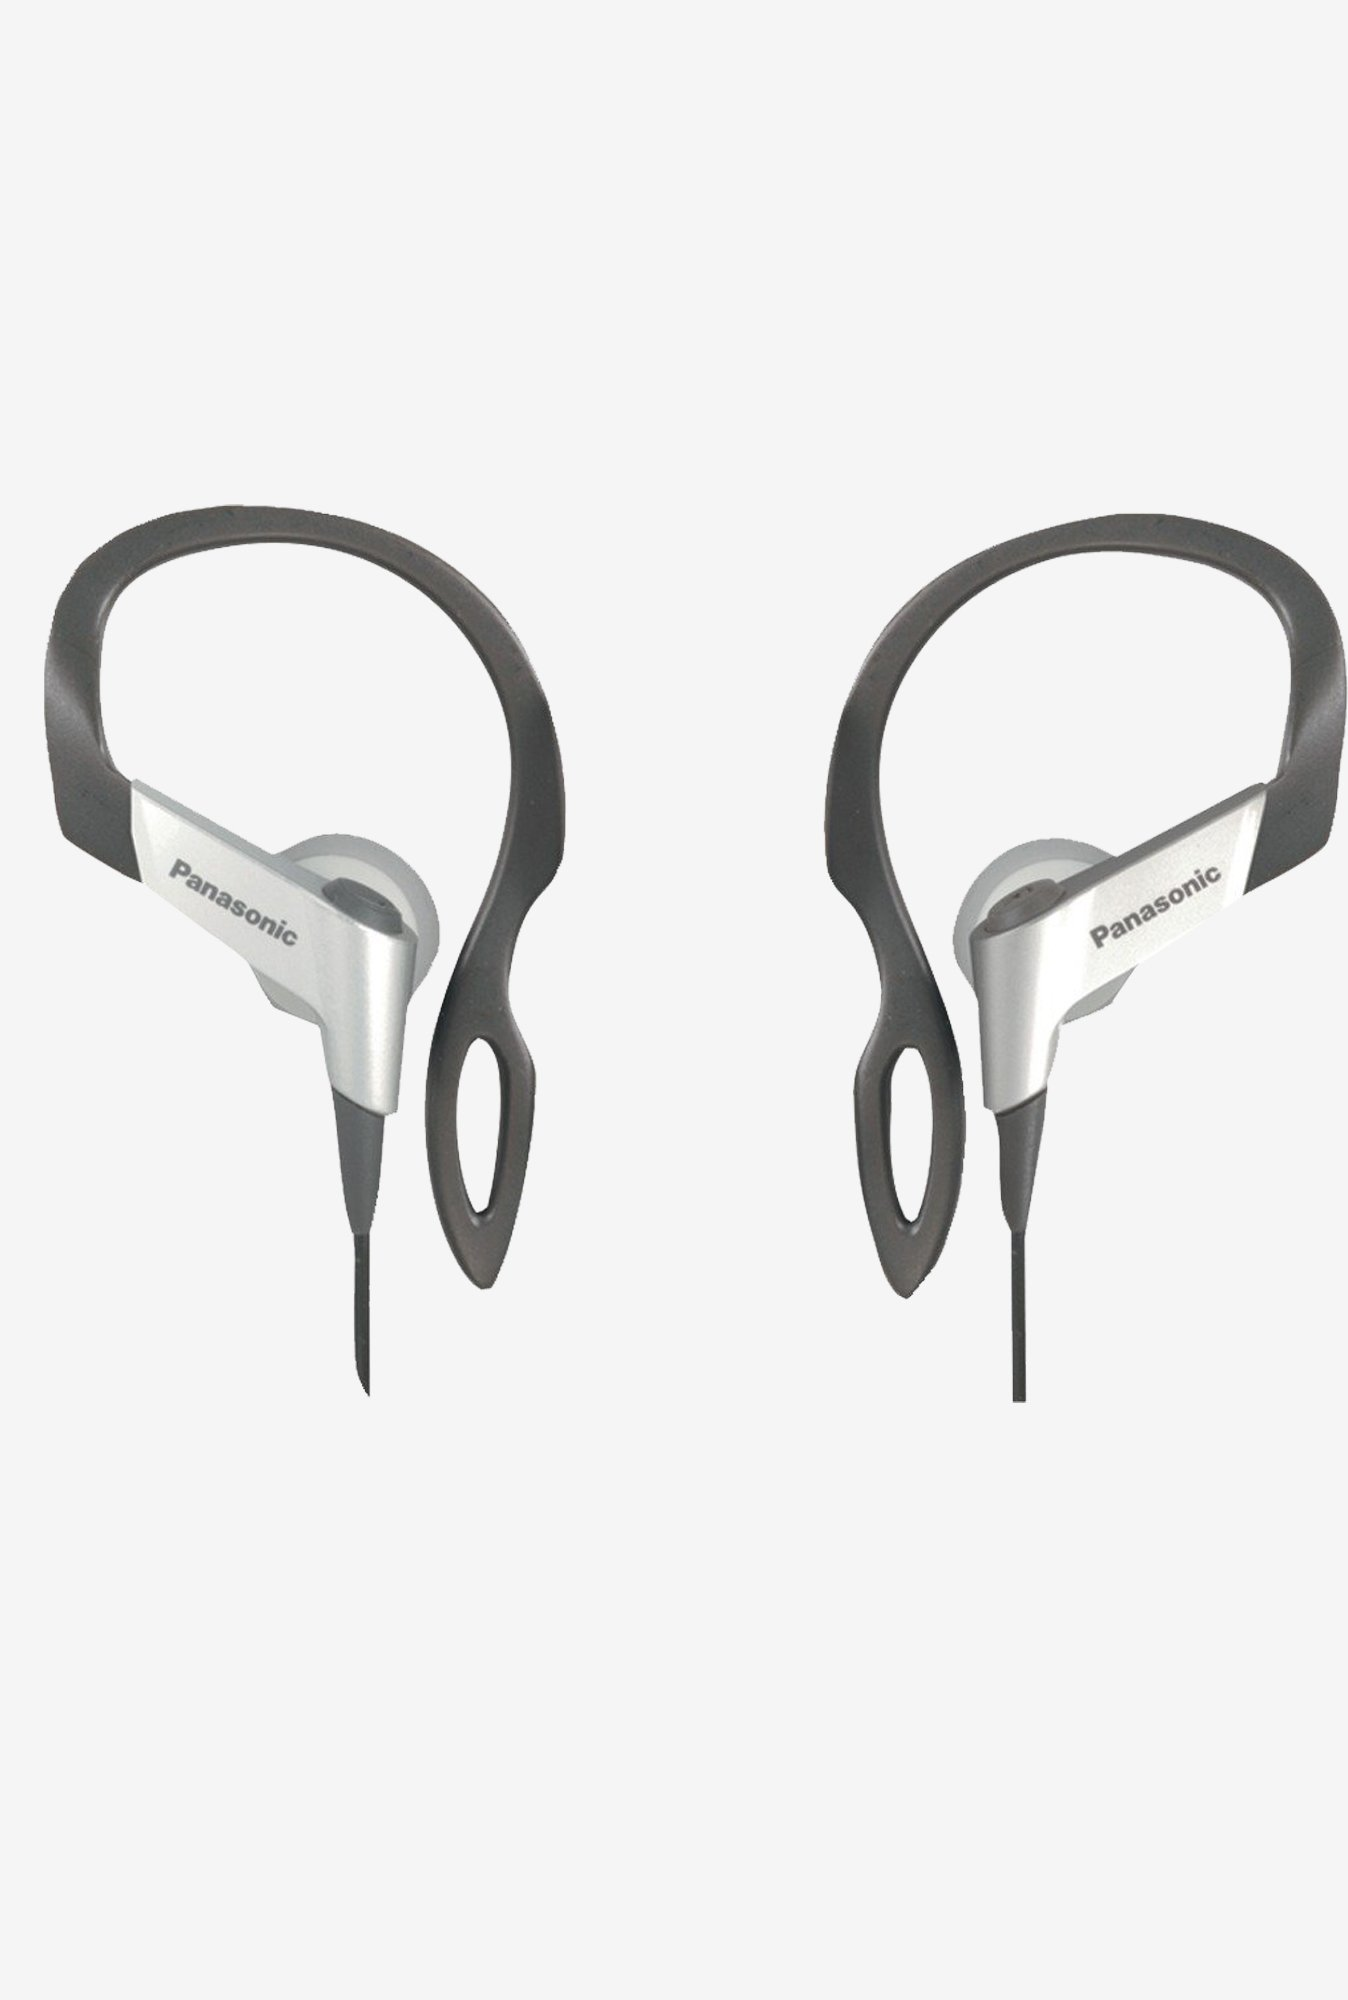 Panasonic RP-HS16-S Flexible Ear Hinge Heaphones (Silver)